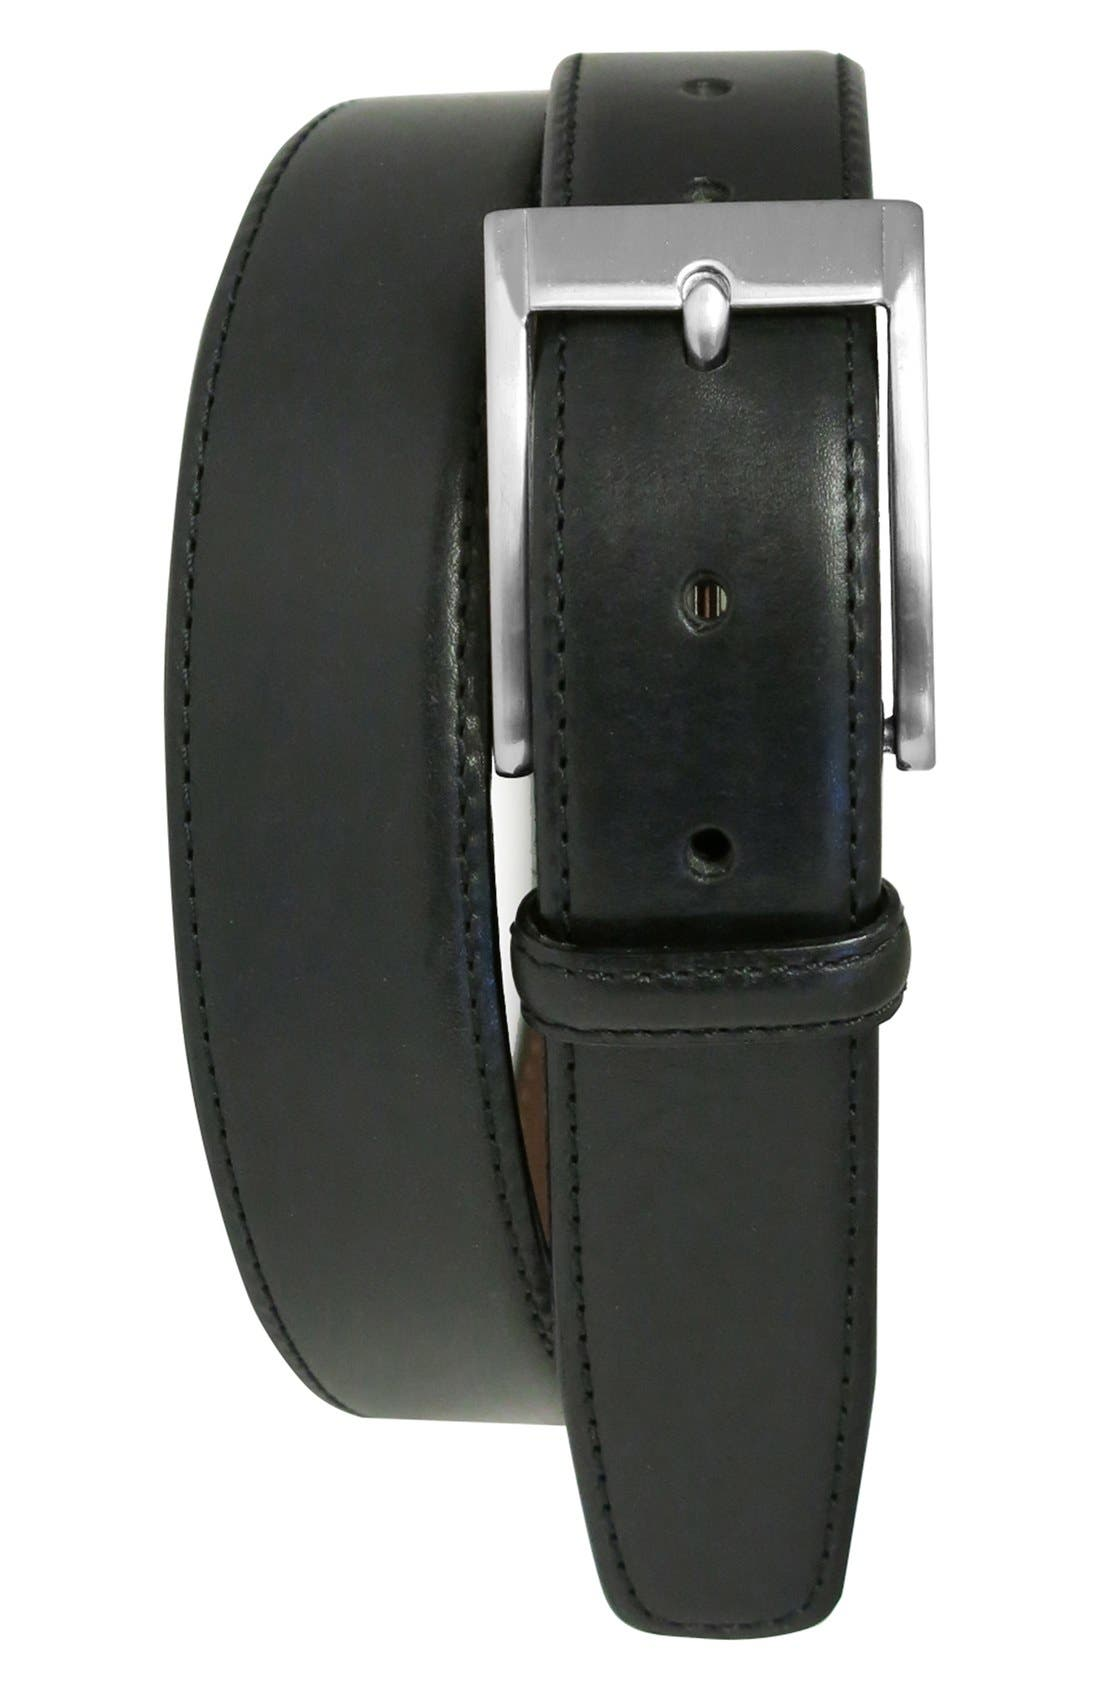 BOCONI 'Collins' Leather Belt